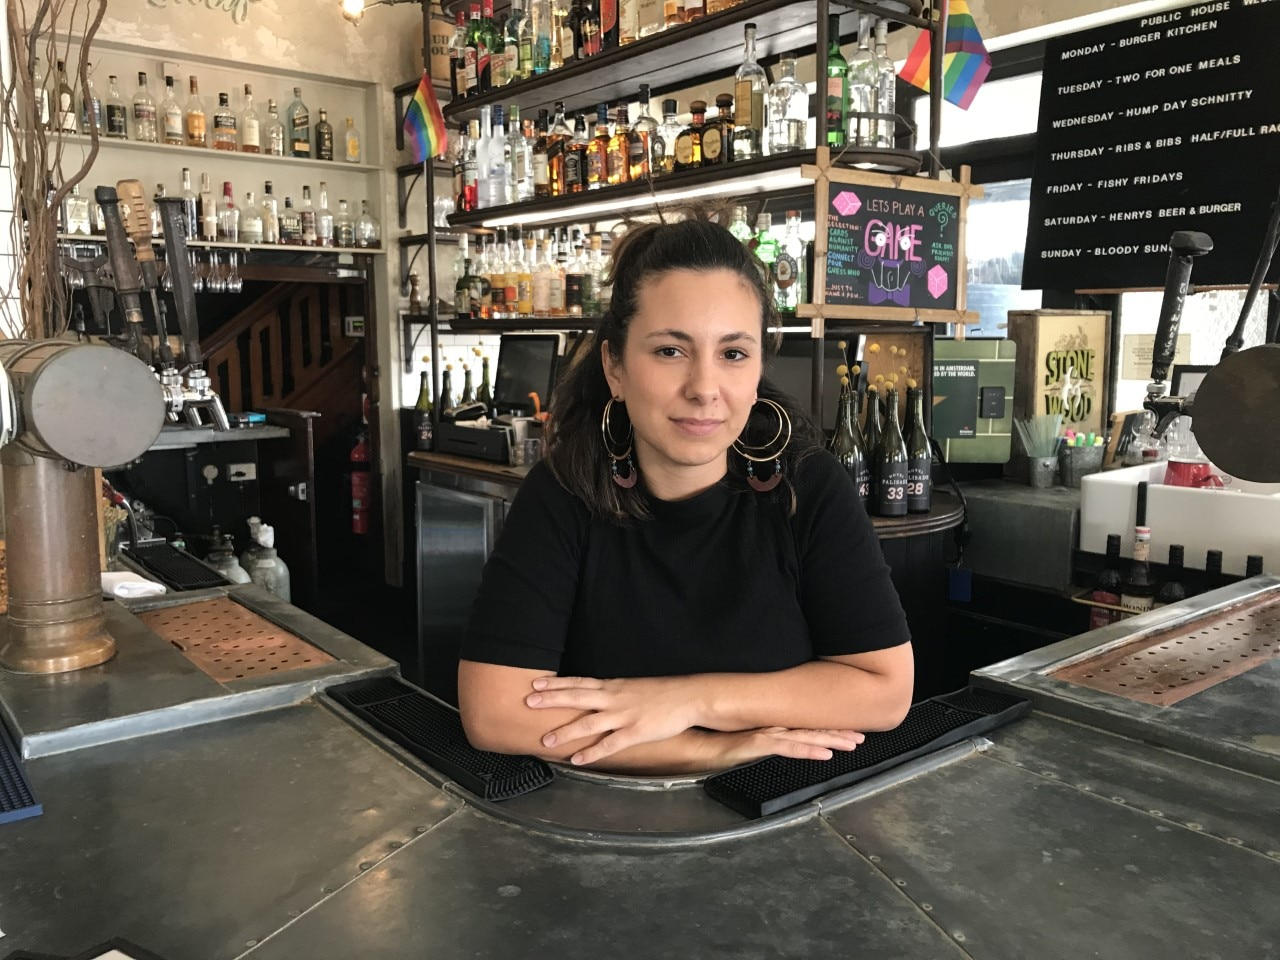 Italian employee Laura Persiani is glad to be back at work at Hotel Palisades.